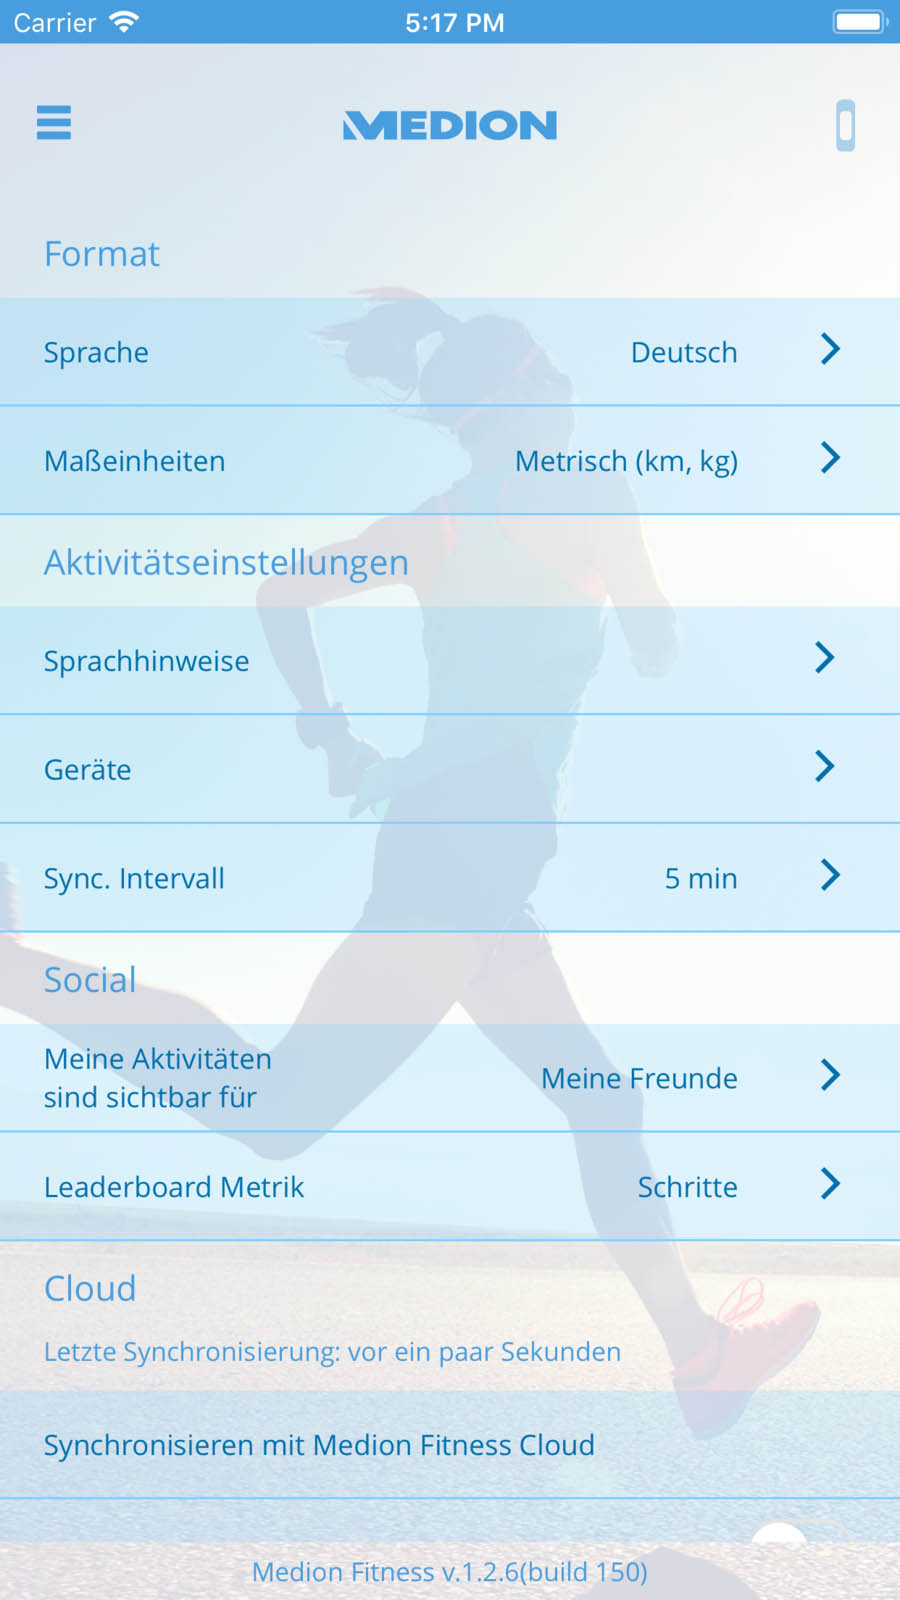 MEDION Fitness App Settings